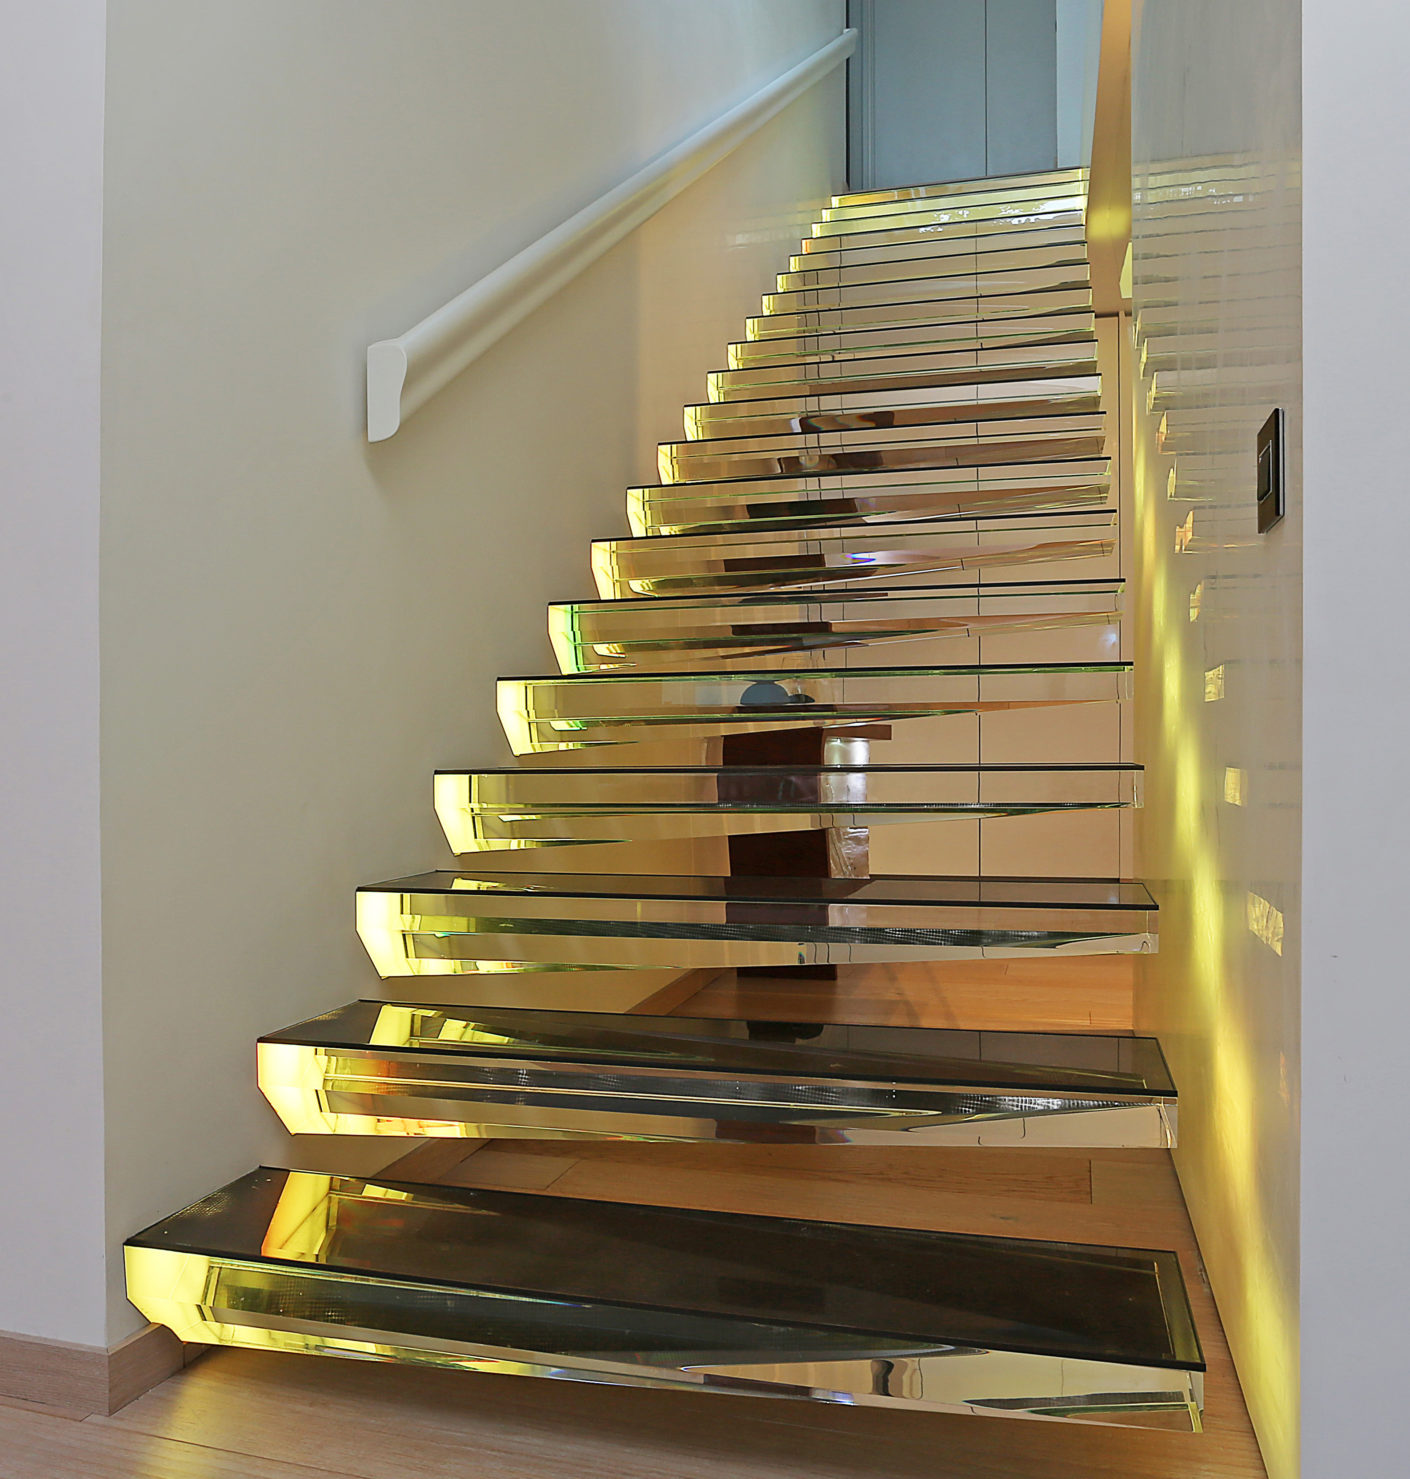 To make the steps even more spectacular the stairs can be illuminated by LED light reflections in changing colors.